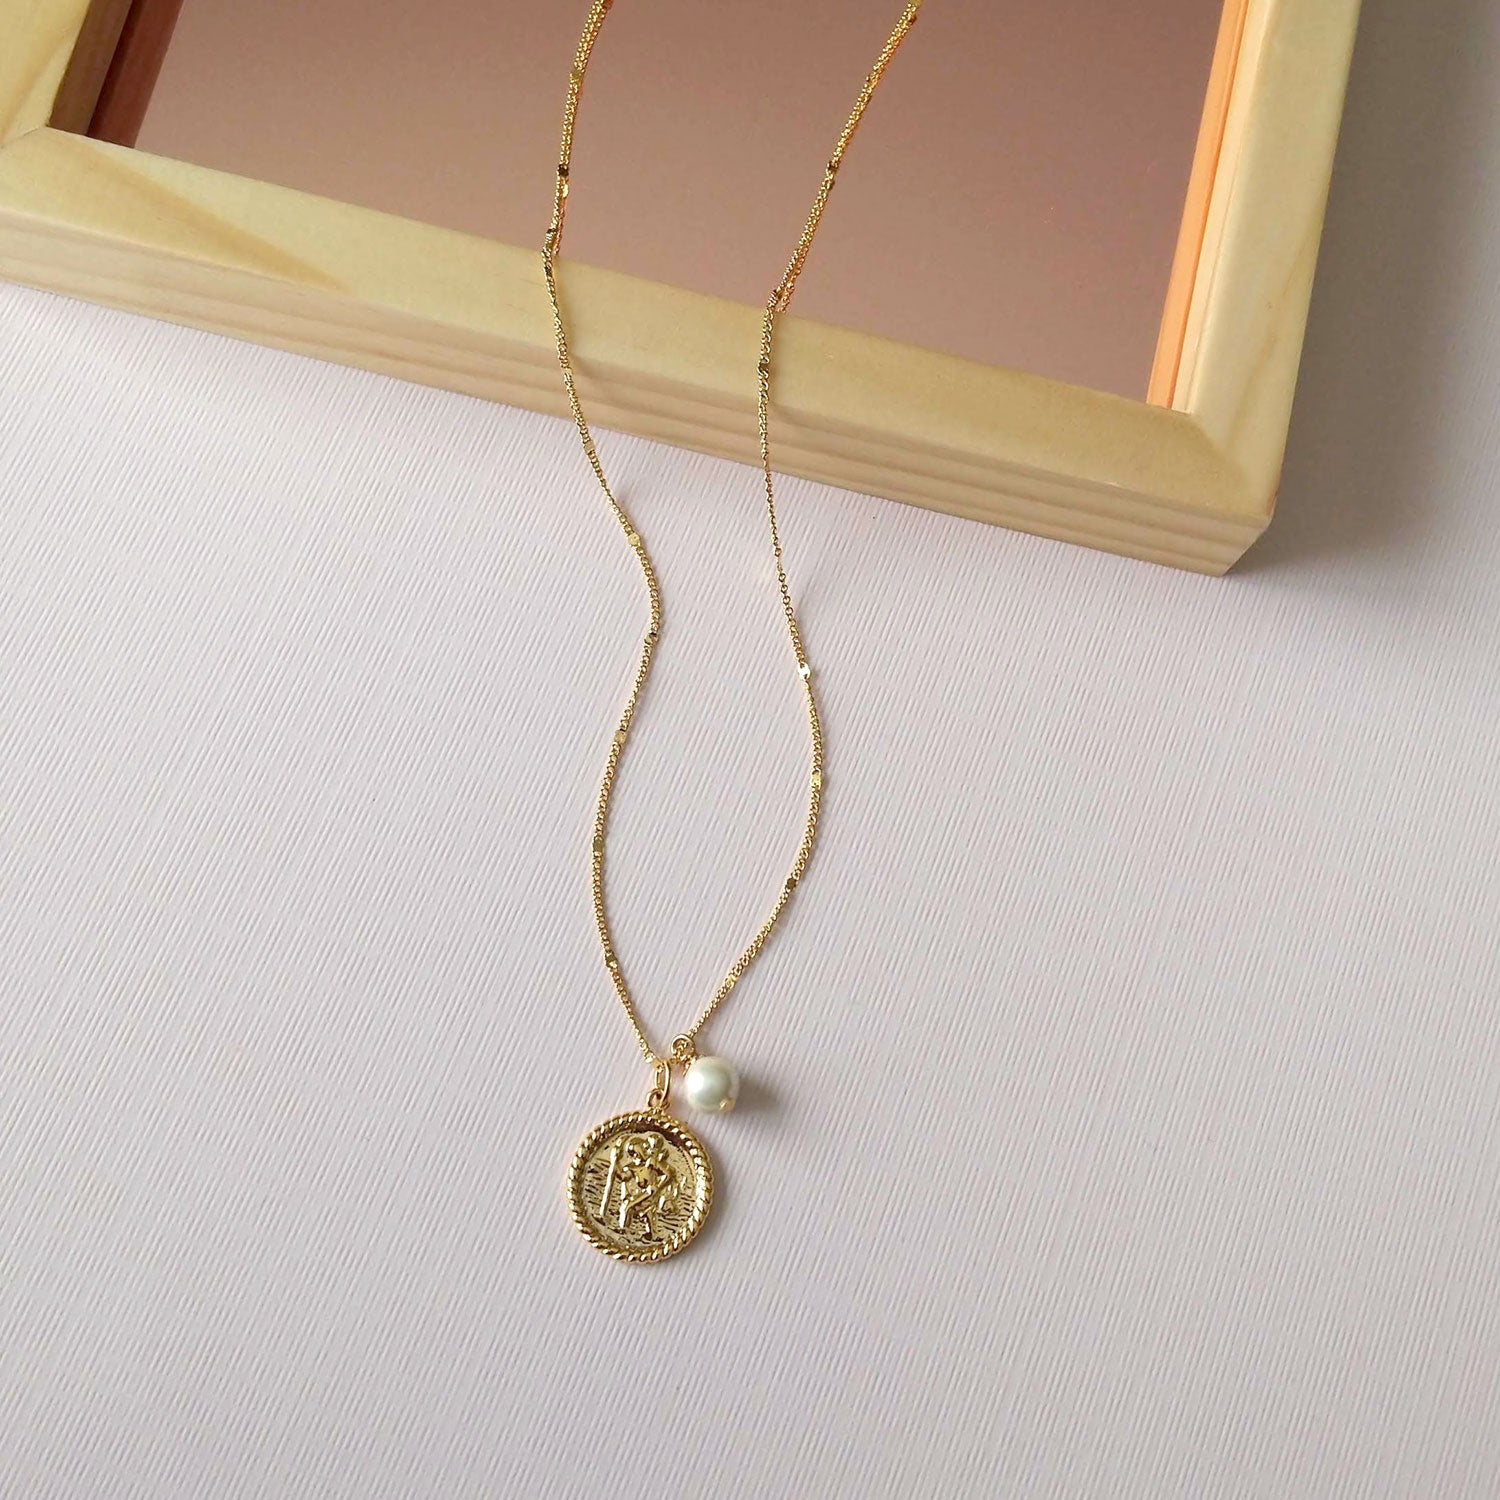 charm necklace saint christopher medal